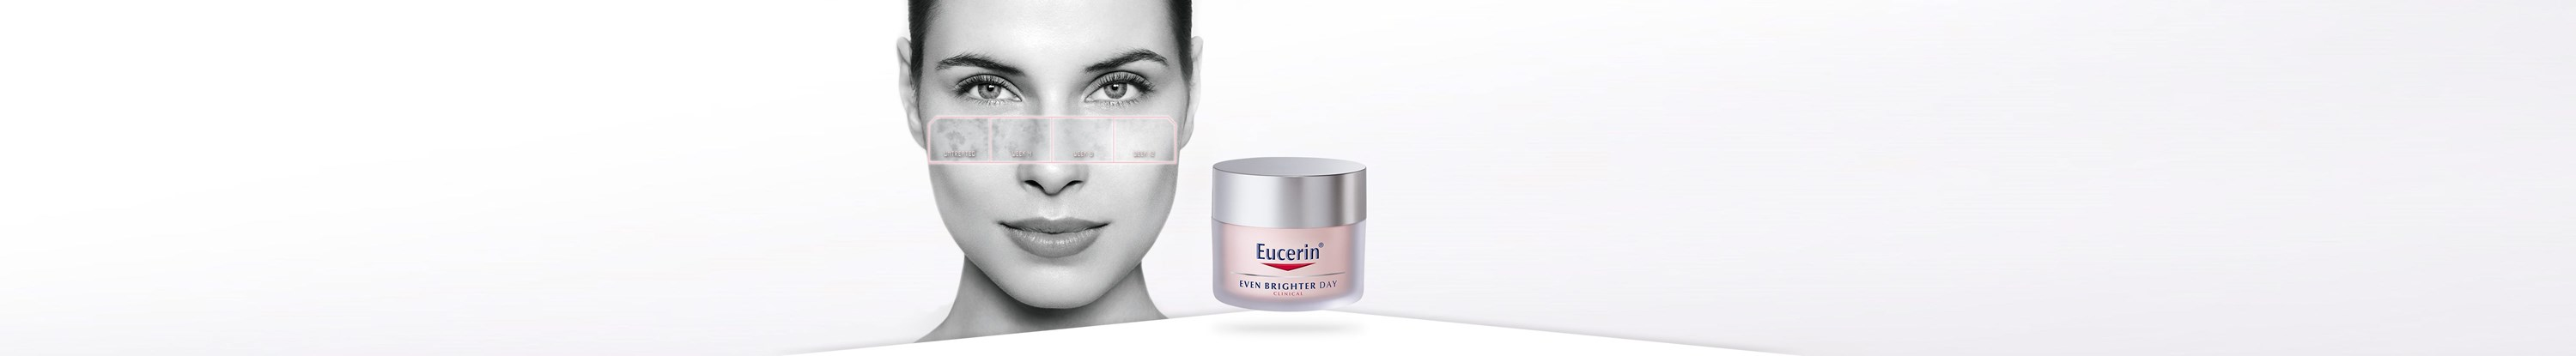 Eucerin Even Brighter product range